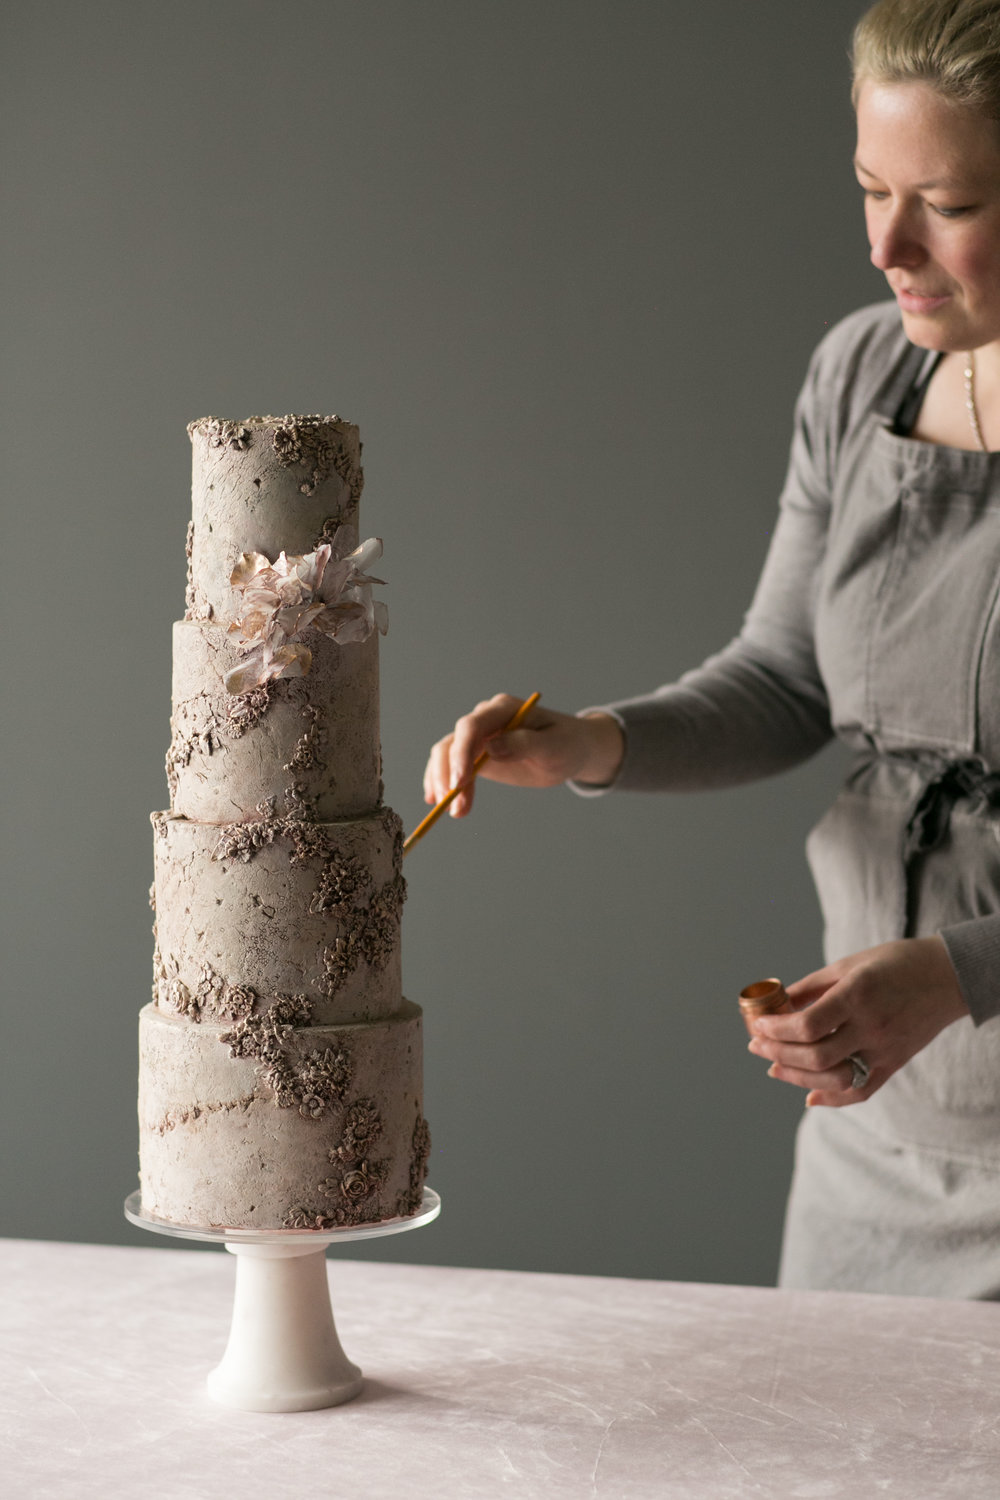 A NEW VISION FOR CAKE DESIGN - An Online Course with If I Madehttp://www.ifimade.com/jasmine-rae/course-homeThis course is about learning principles that may help YOU find YOU, your own voice, a voice you may want to share with the world in the robust form of a thriving business. This course isn't about a formula, isn't about tips and tricks, or how to be me. I'm extremely proud of the class we have created for you, because it was about using myself as an example of a journey. Though this online workshop is rooted in practicality, technique, and lessons, it's also beautiful, and most importantly, it was about sharing a perspective, principles, and an approach to myself as an artist. My hope is that you'd be able to do the same and end up with something uniquely YOU. This course was designed with the hope that something will resonate for you and be immediately applicable to your life and business.In the first part of the course, The Business Behind Cake Design, I'll walk you through some things I've learned about owning and operating my own business, including how I started Jasmine Rae Cakes, how I found and (continue to) develop my voice as an artist, my philosophy on pricing and ways I believe the wedding industry needs to change, and how I manage my team and client logistics.In the second part of the course, The Art of Cake Design, I'll teach you numerous advanced decorating techniques that are essential to some of my signature cake designs. Starting with some familiar (and unfamiliar) tools and materials, I demonstrate how I approach rough stone/marble/granite, bas relief, metallic finishes, and how to age those textures. This is also the first time I am teaching how to make my rice paper flowers.For me, techniques and tips are simply an ACCESS to skill-building. It IS helpful for growing artistically, and I do want to show you what I've learned so you can expand your repertoire...but I believe the MAIN function of teaching, of sharing MY self, is to be so clear in showing you MY perspective, that you feel more clear about your own, about YOUR self. Working on your personal expression as a cake artist will change your business. Instead of continuing to make yet another popular Pinterist pin cake, you'll be making work that is unique and inspired...professionally.It is a process, and it takes time, ripening, and it takes support.